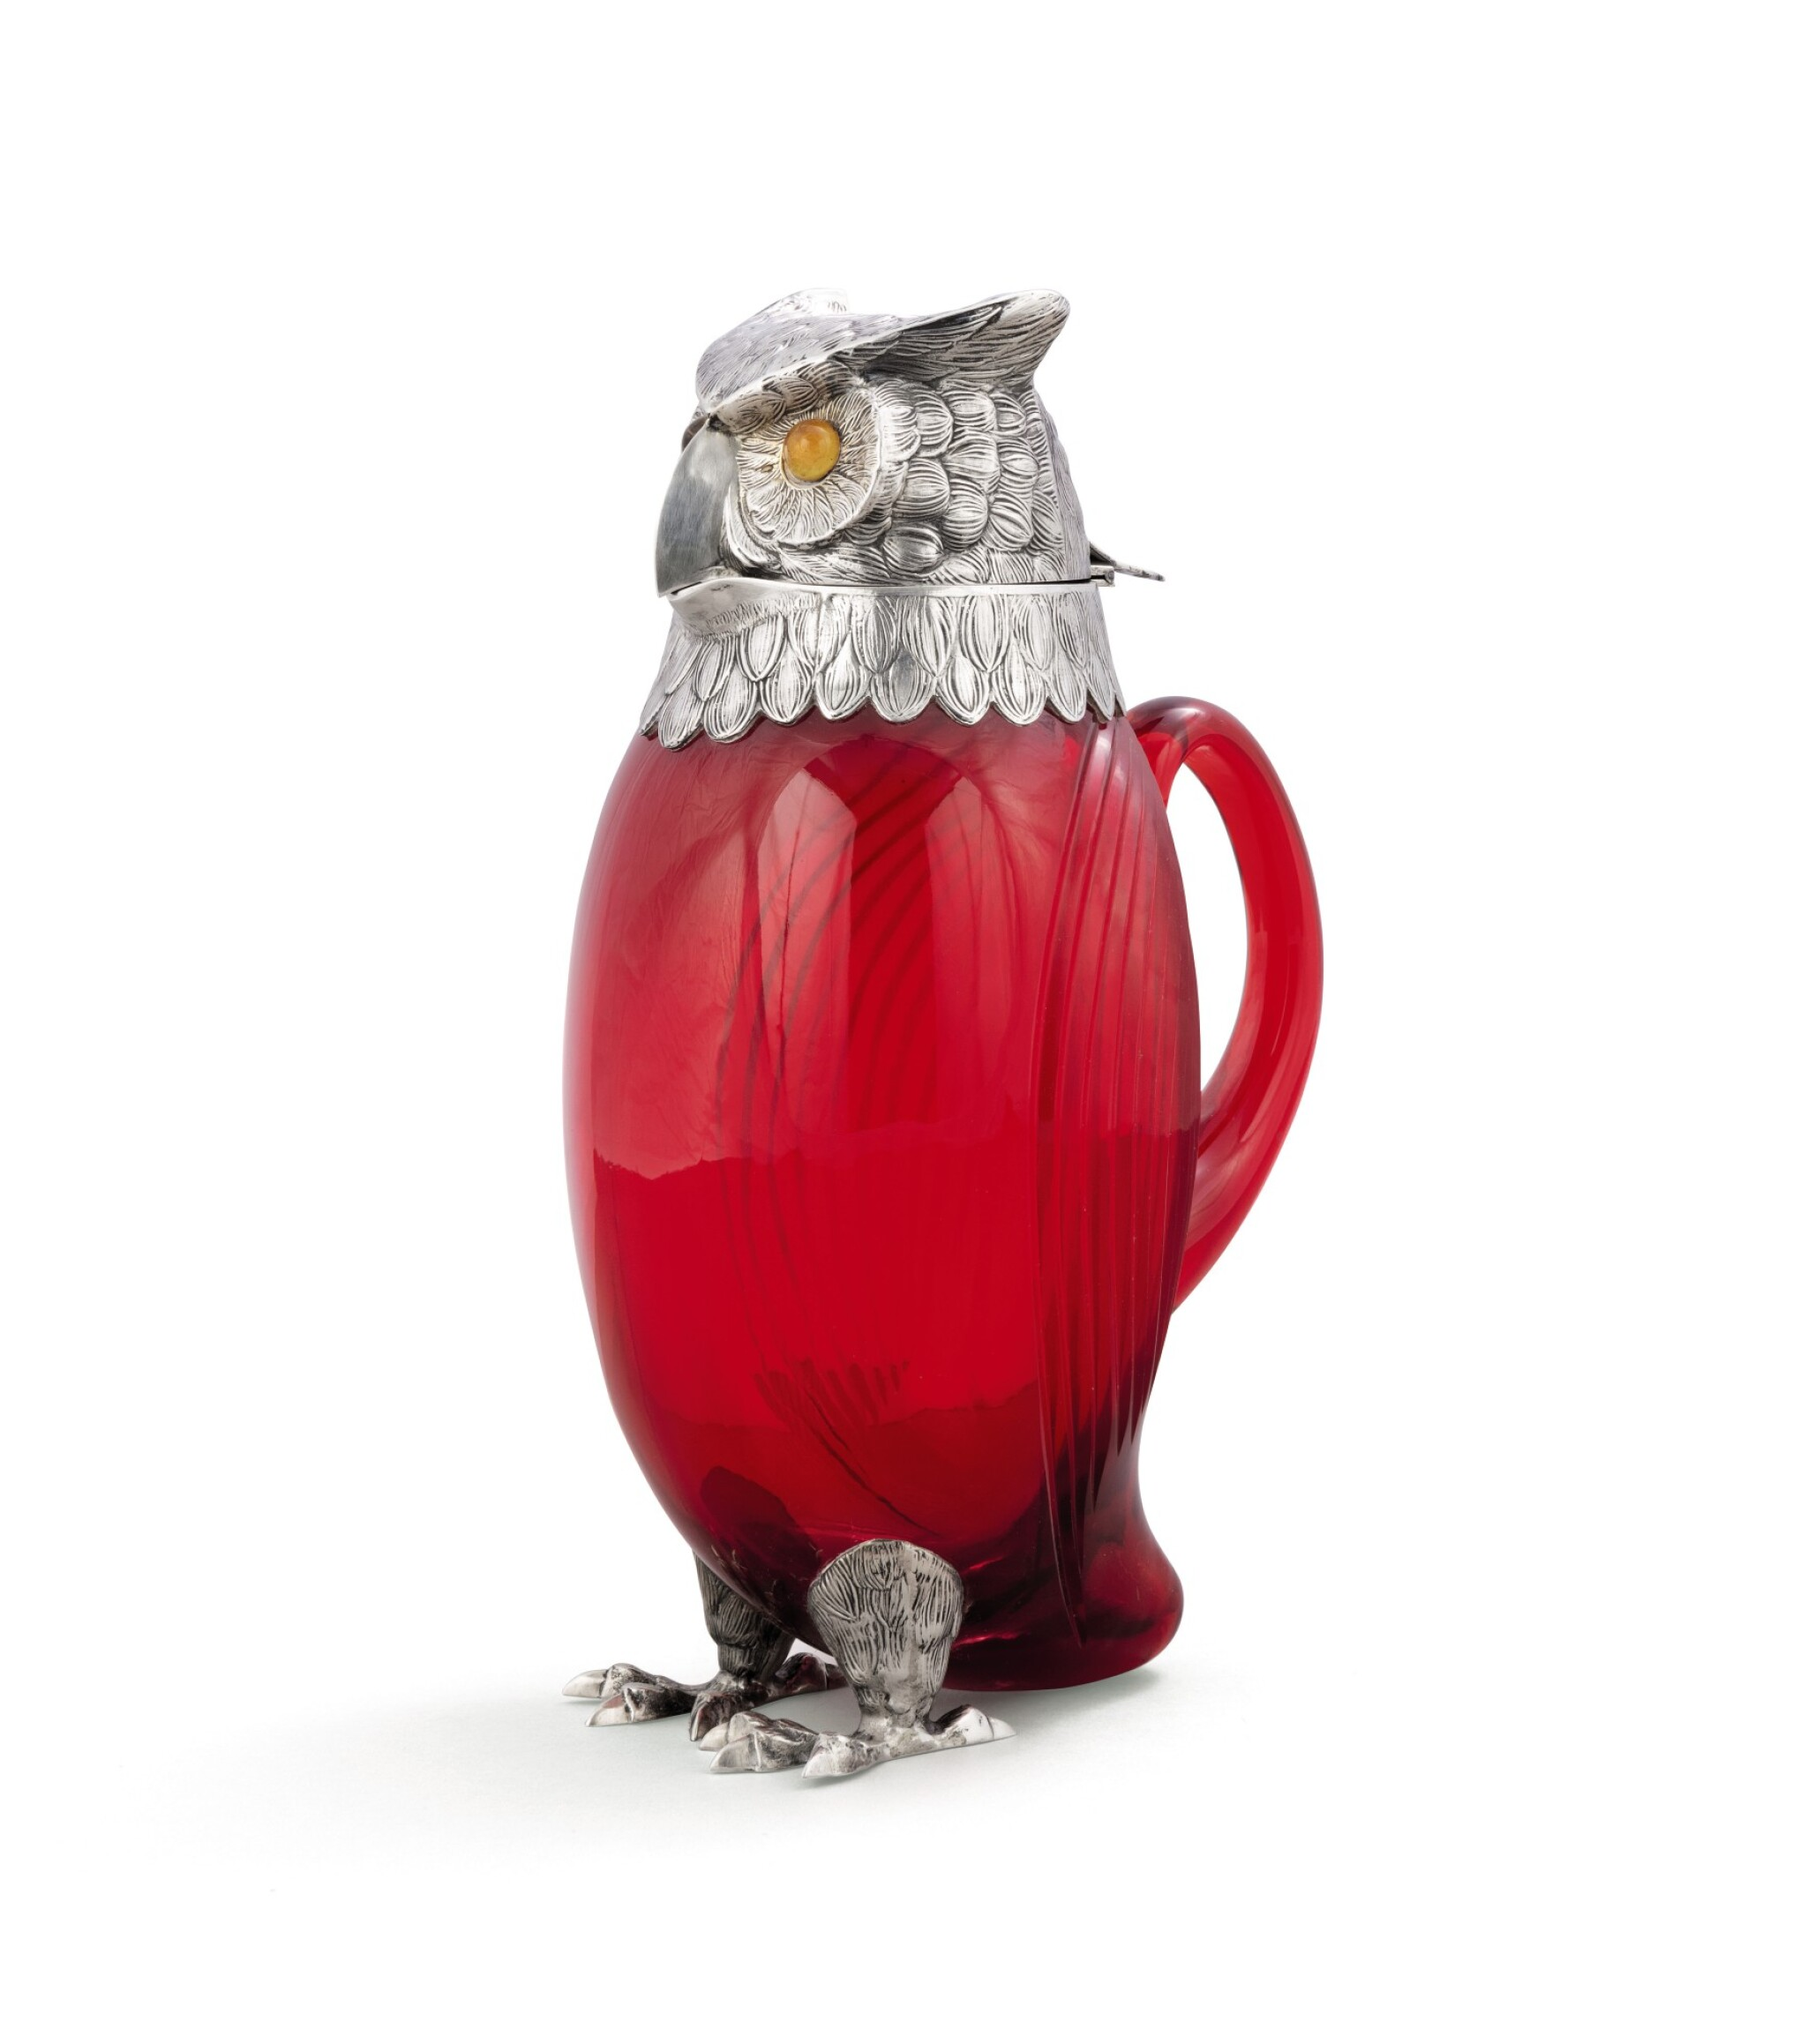 View full screen - View 1 of Lot 53. A red glass owl decanter with silver head, neck, and feet, Cartier, Paris, 20th century.